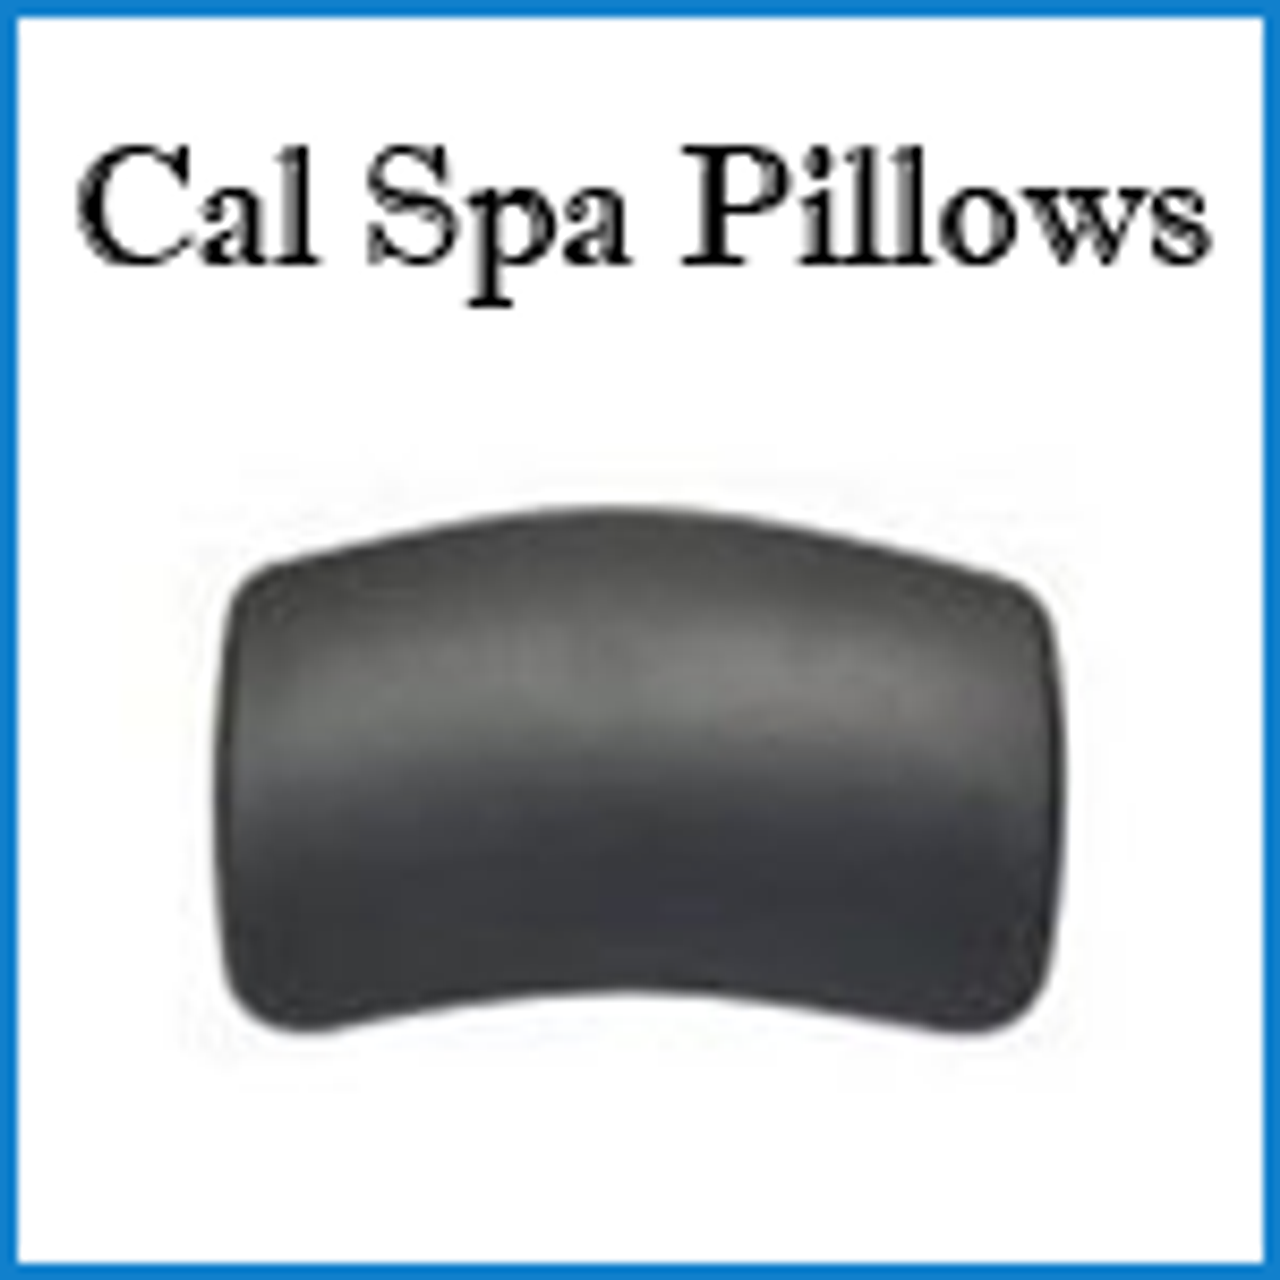 Cal Spas Pillows